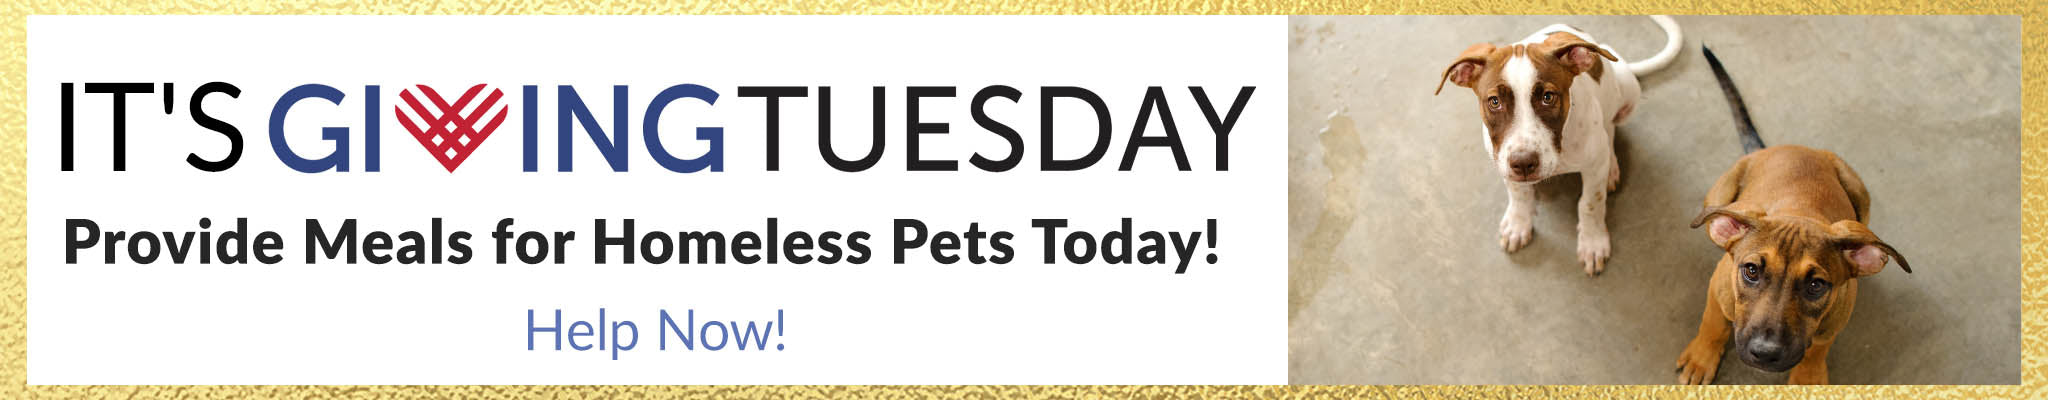 It's Giving Tuesday! | Provide Meals for Homeless Pets Today! | Help Now